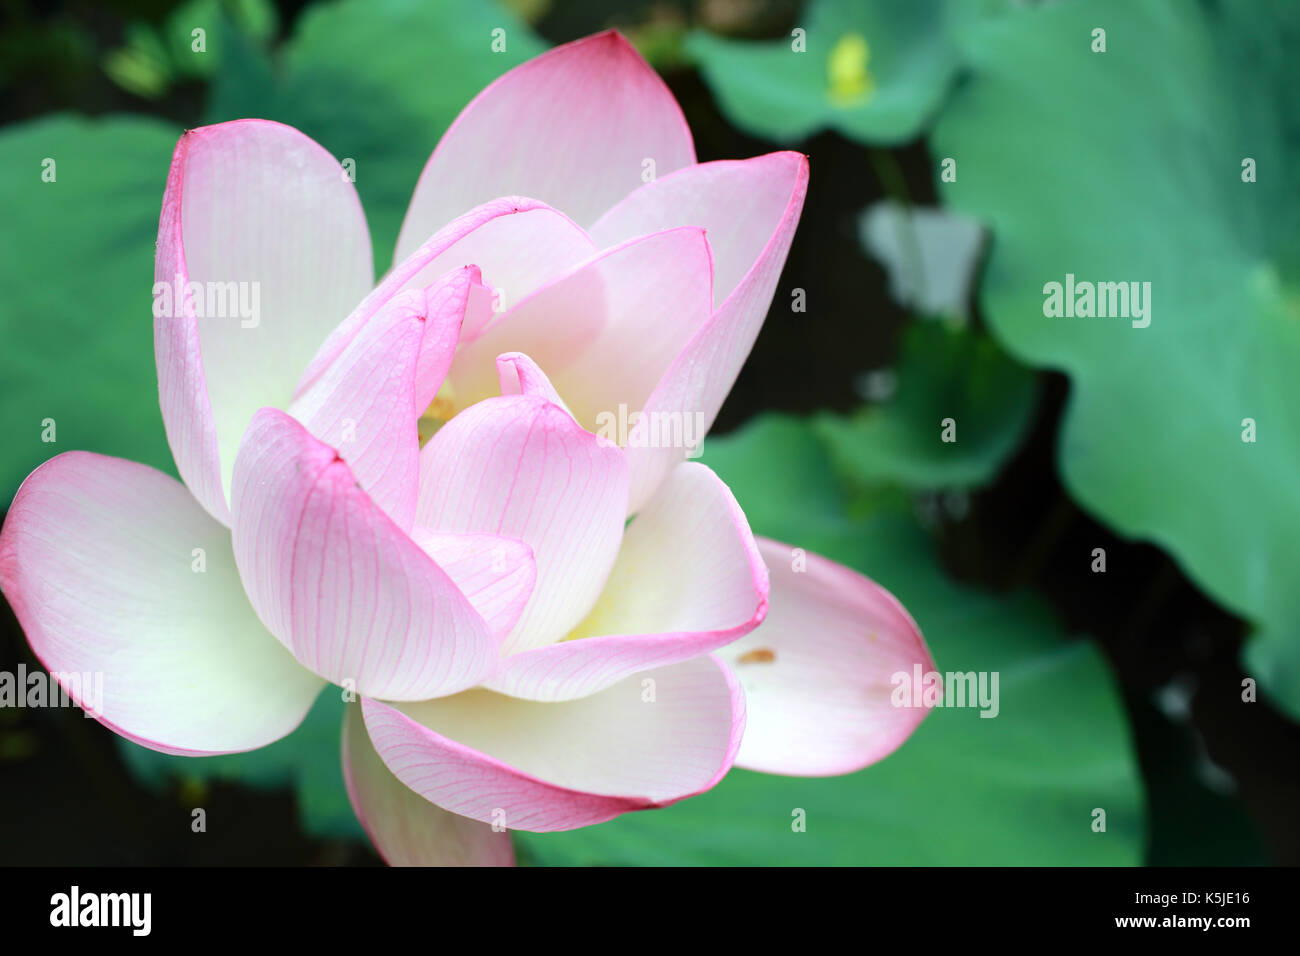 Blossom opening lotus means the peace in chinese culture stock photo blossom opening lotus means the peace in chinese culture izmirmasajfo